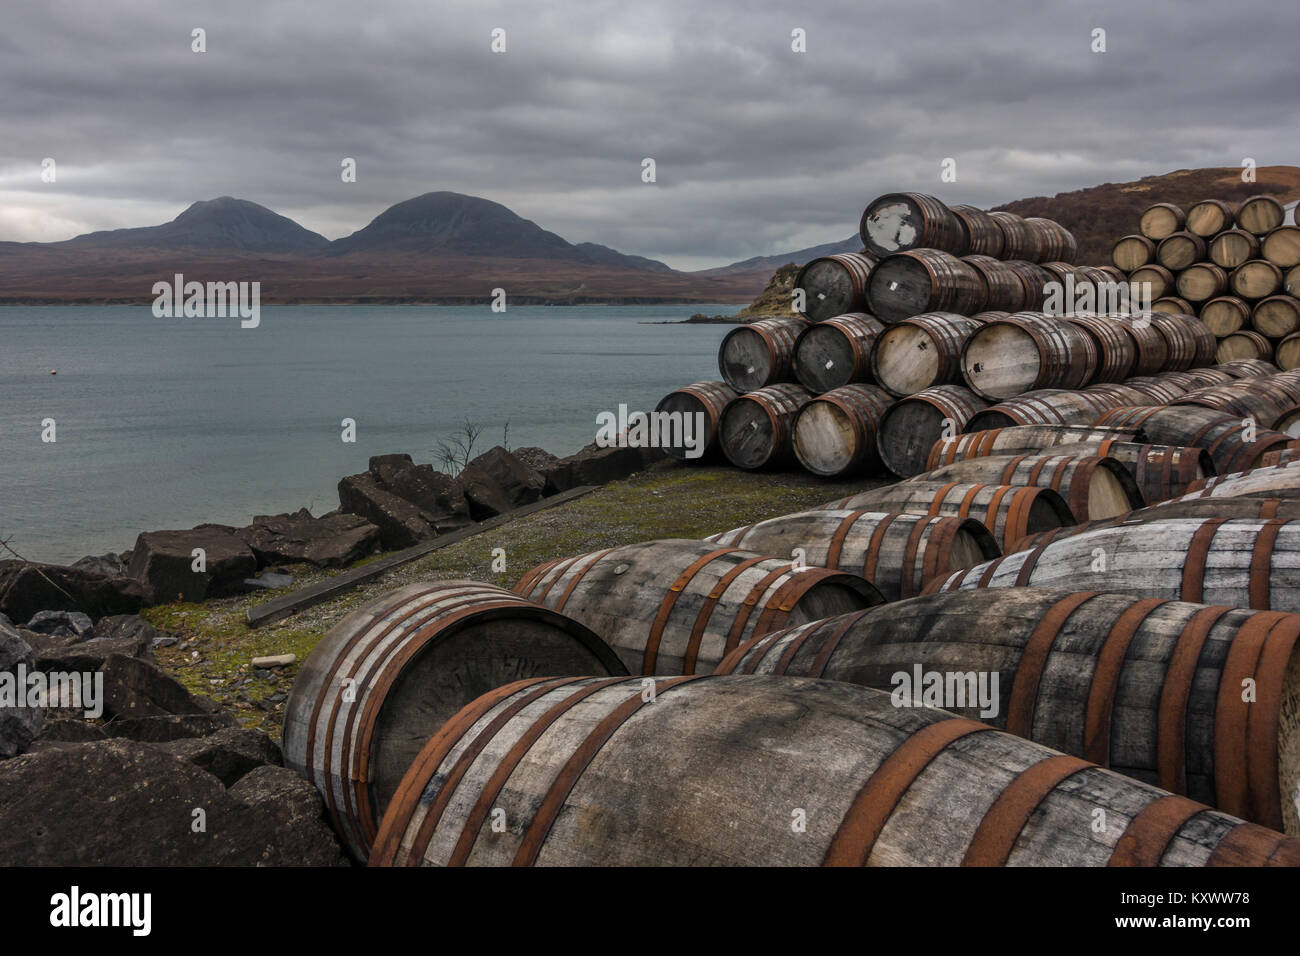 Scottish landscapes with whisky barrels stacked up at the Bunnahabhain Distillery and views of Isle of Jura, Isle - Stock Image